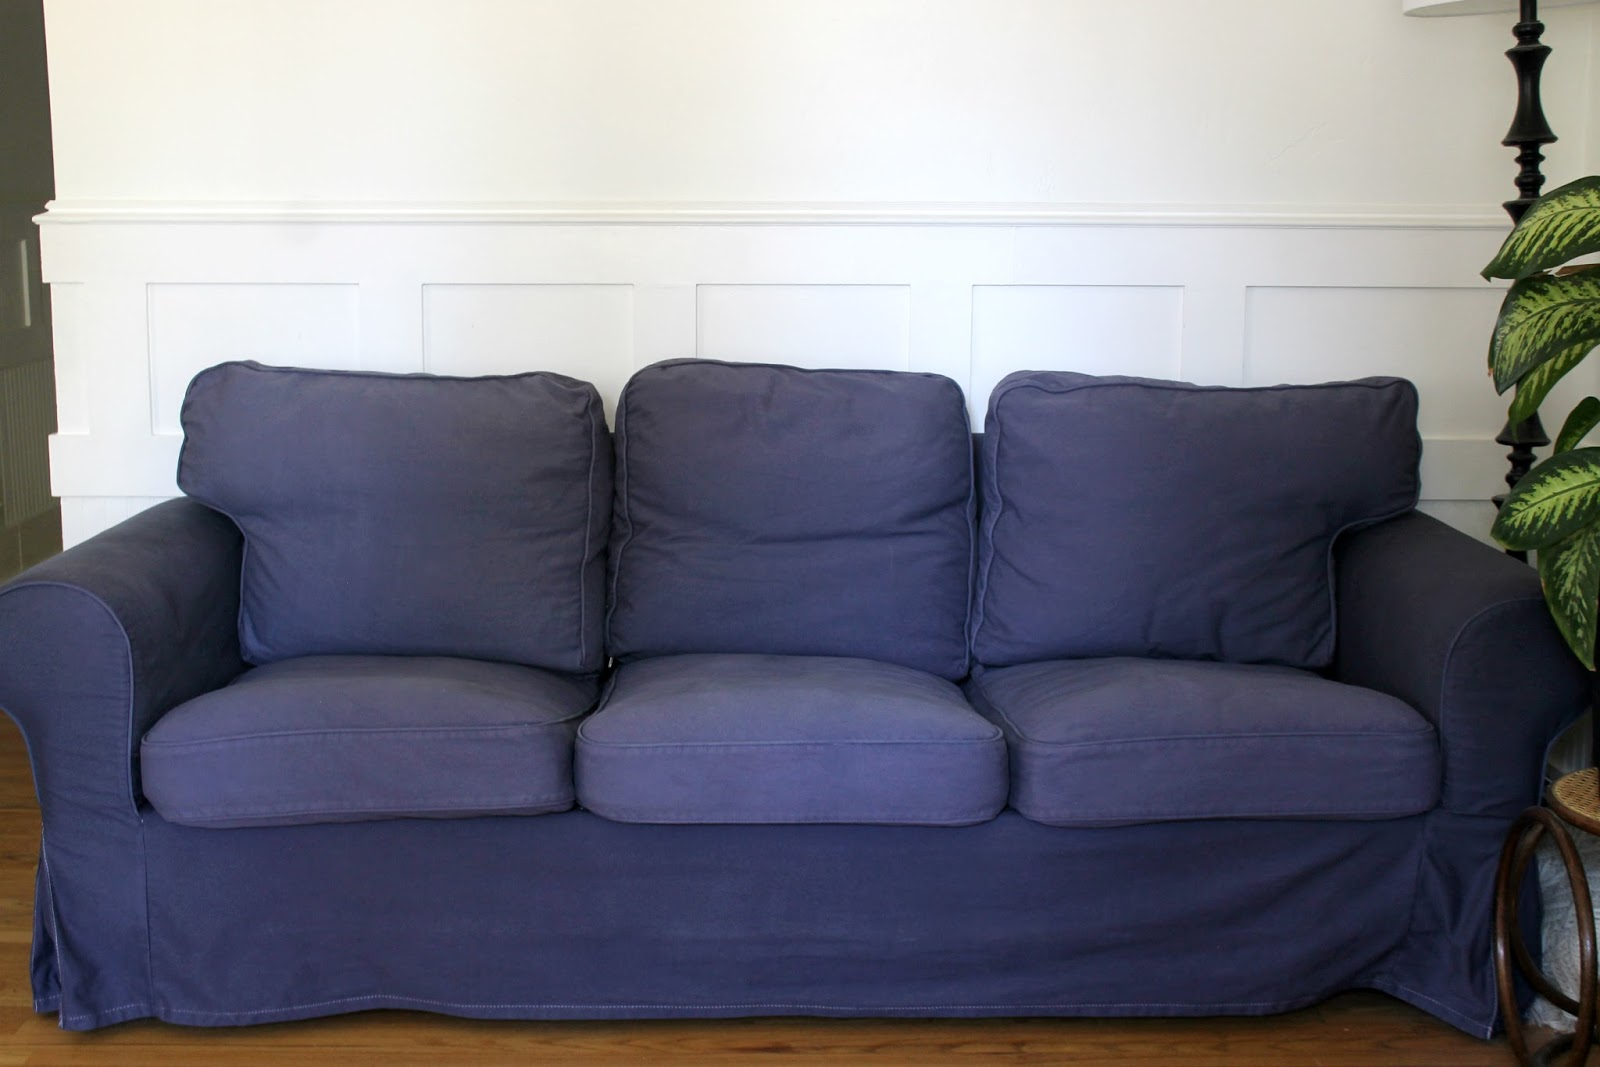 Rp Corner Sofa Cover Harris Tweed Sofas John Lewis How To Dye A White Ikea Ektorp Navy Blue The Wicker